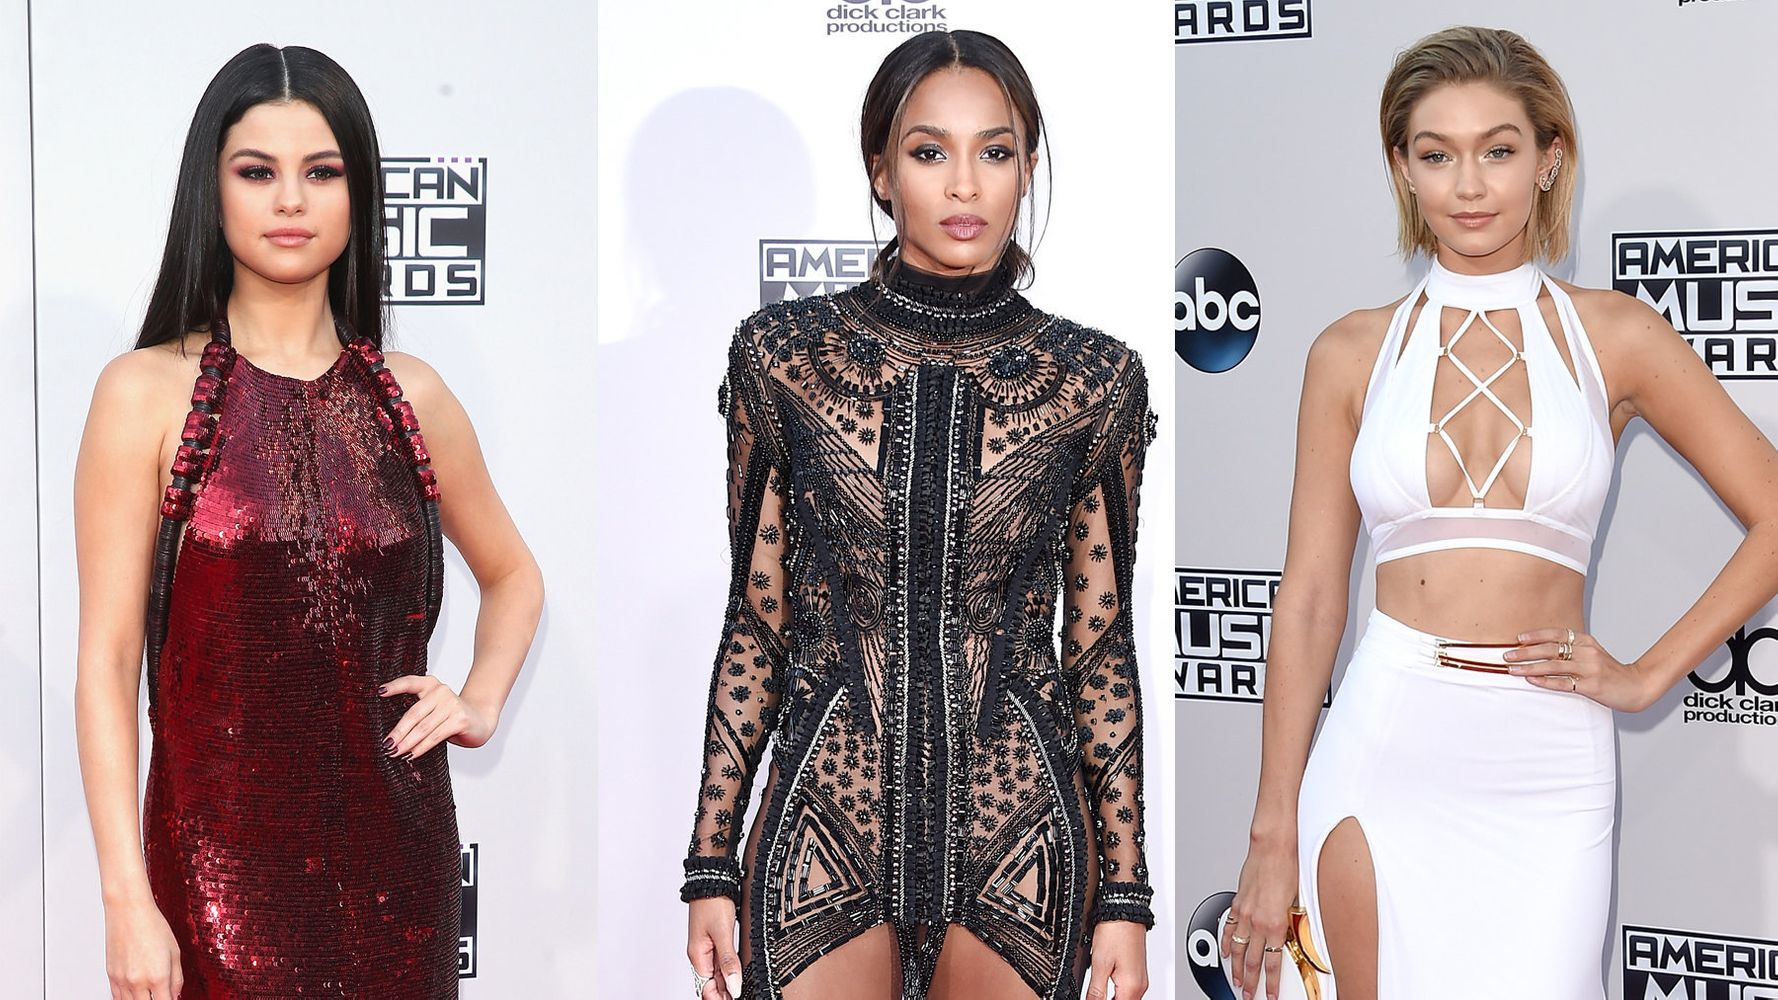 American Music Awards Red Carpet 2015: See All The Stars' Looks